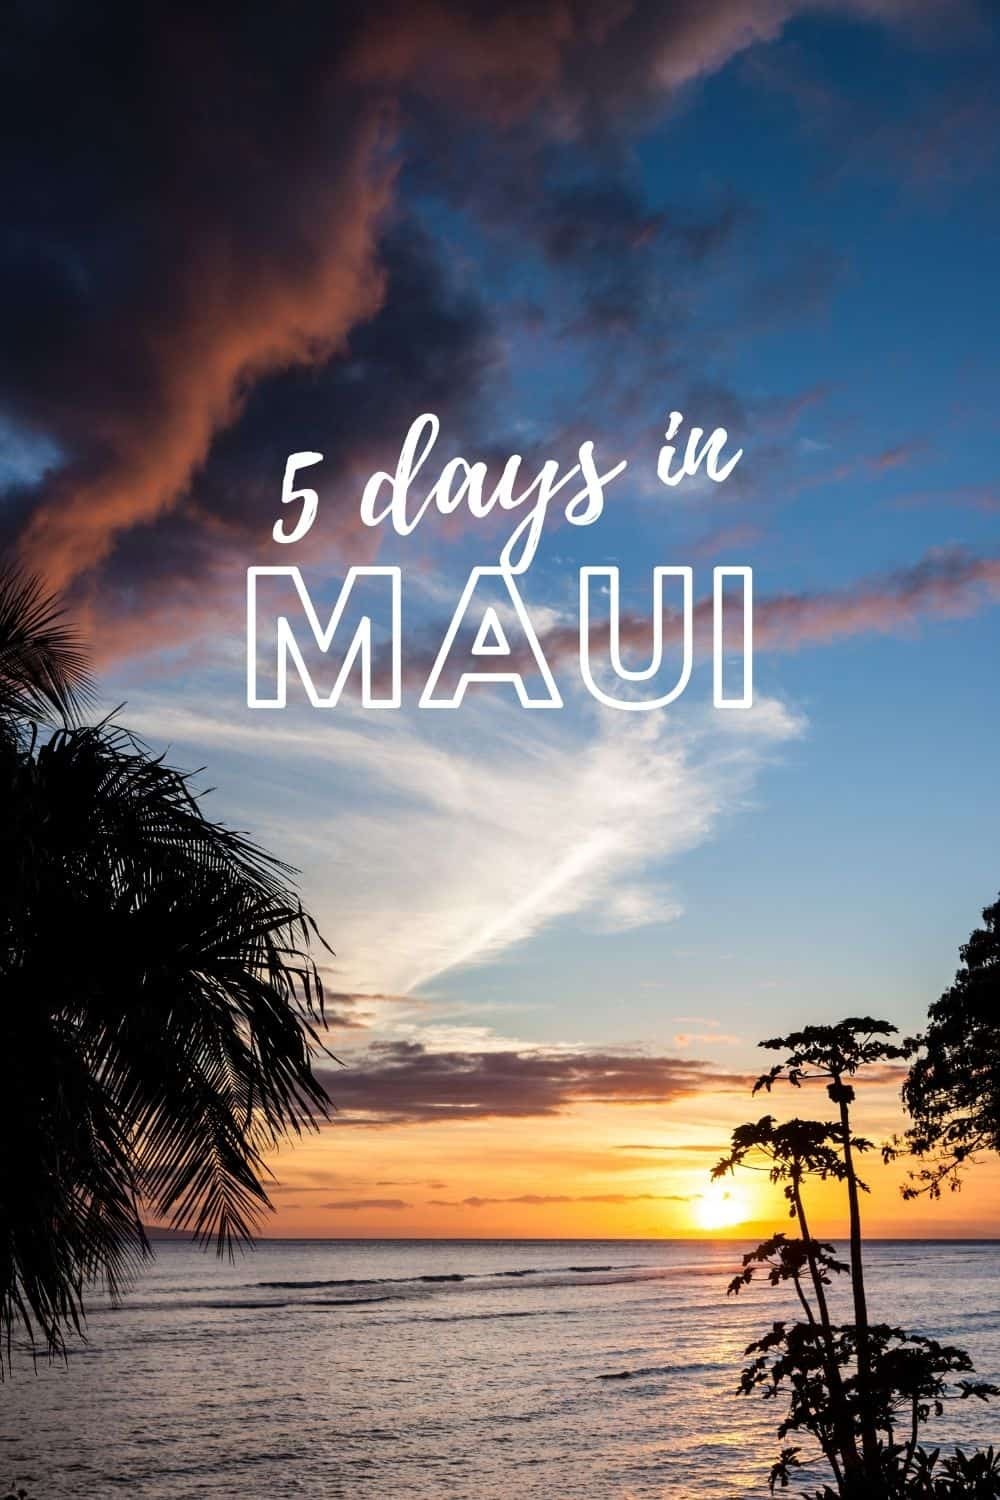 Maui Itinerary - 5 Days Of Epic Sunrises, Drives, Hikes and Turtles